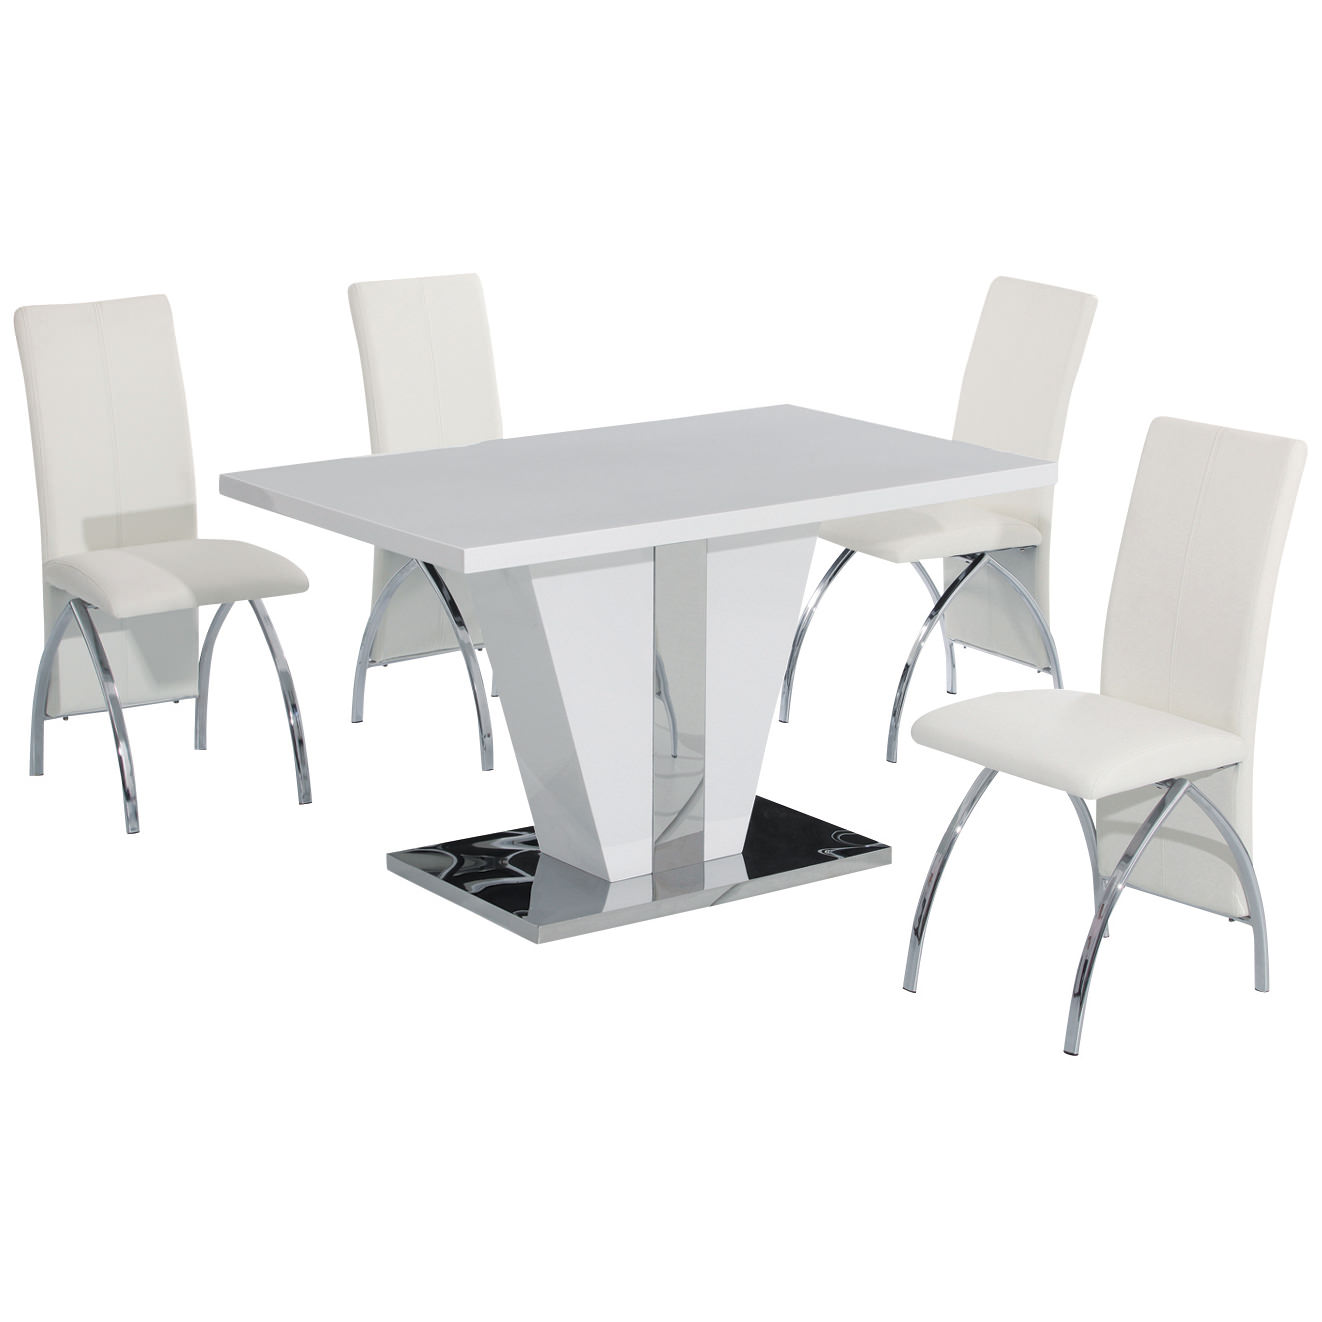 High Gloss Finish Dining Table and Chair Set with 4  : h805costilladiningset4chairsblack1 from www.ebay.co.uk size 1322 x 1322 jpeg 95kB